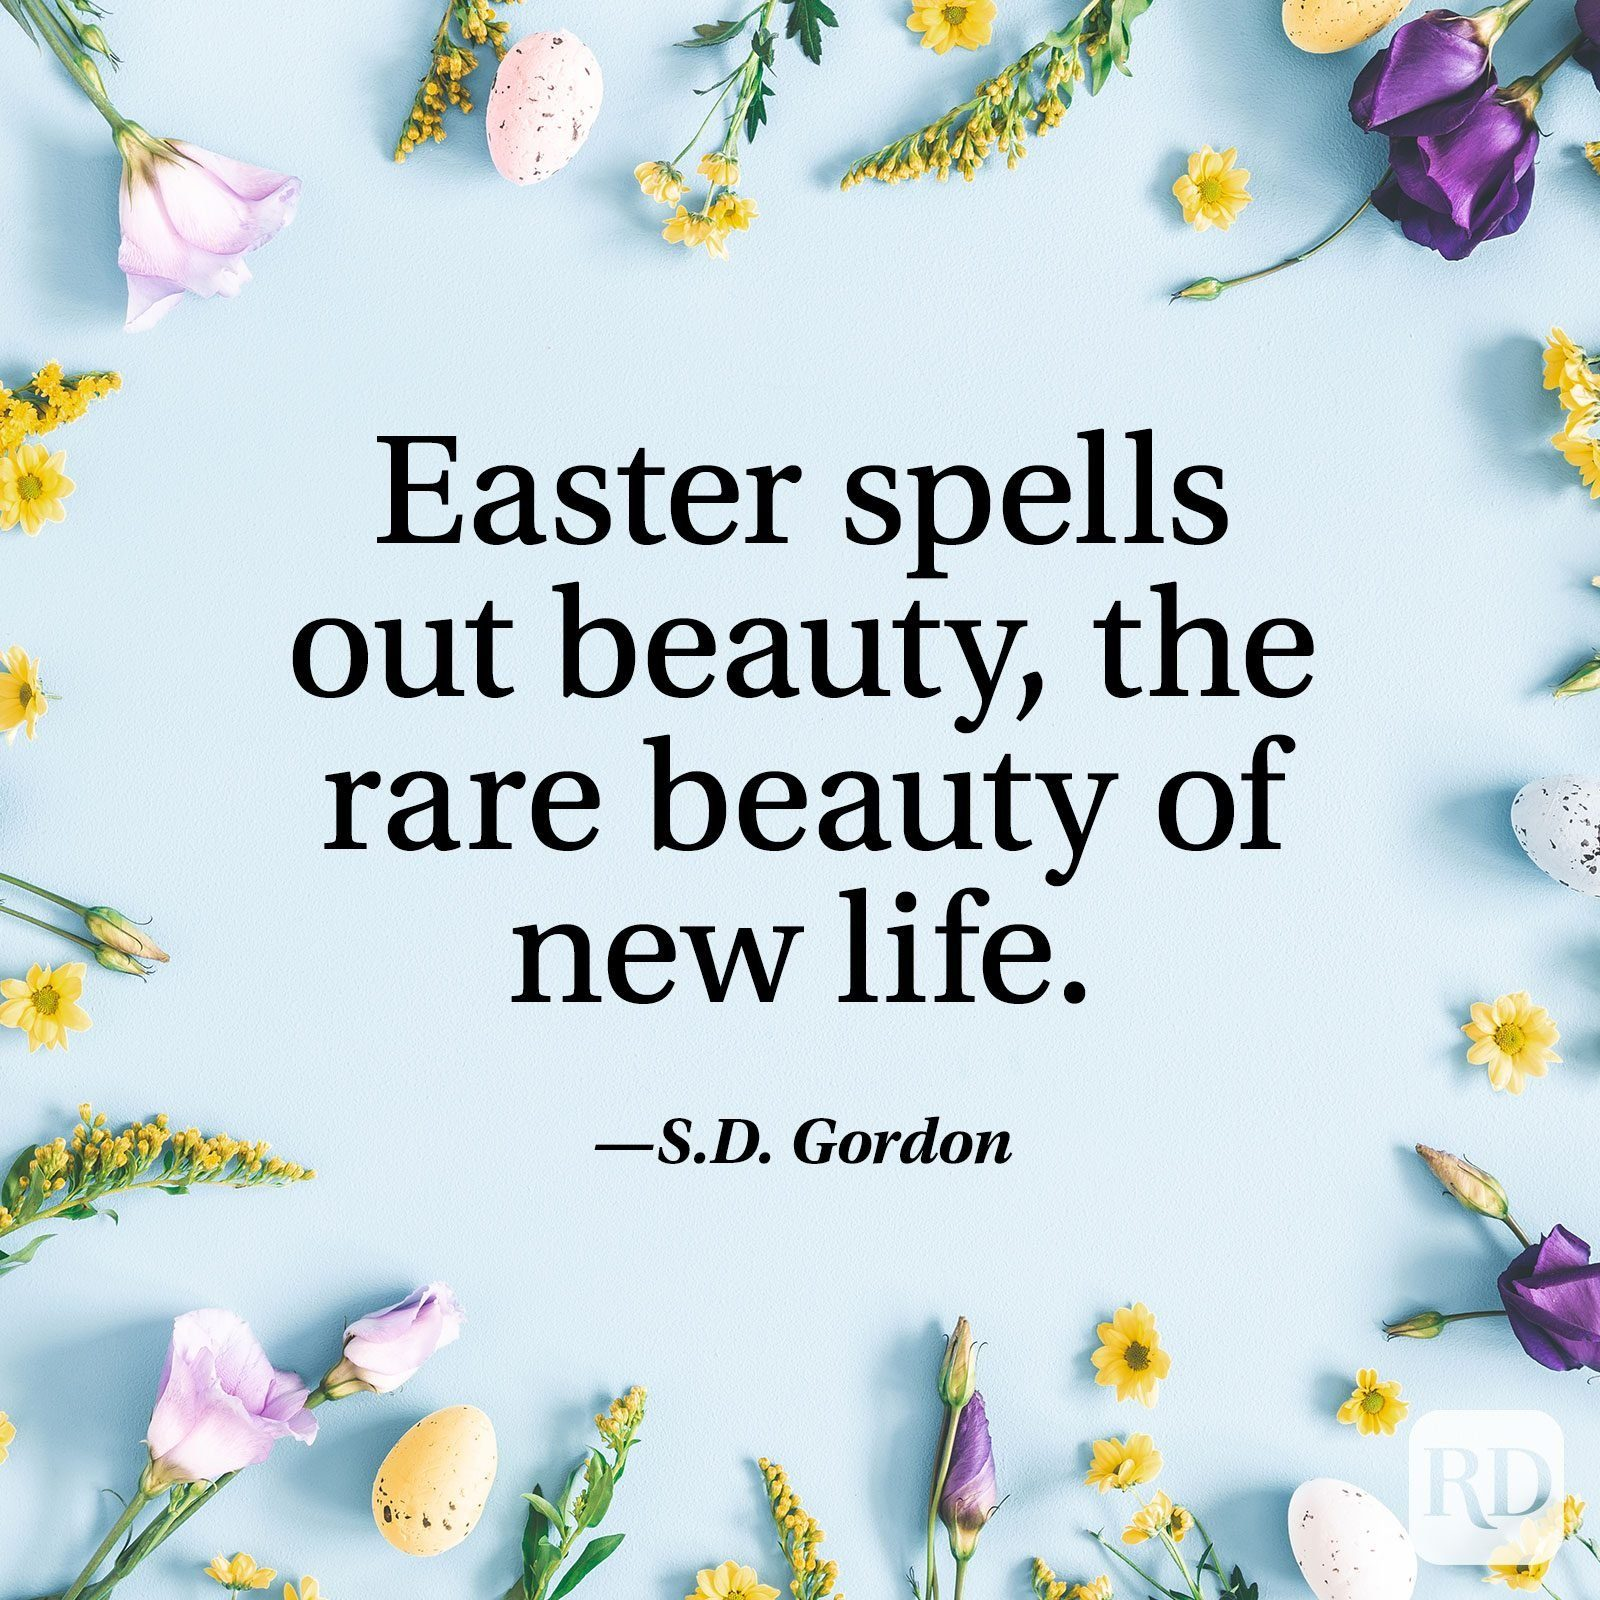 """""""Easter spells out beauty, the rare beauty of new life."""" — S.D. Gordon"""